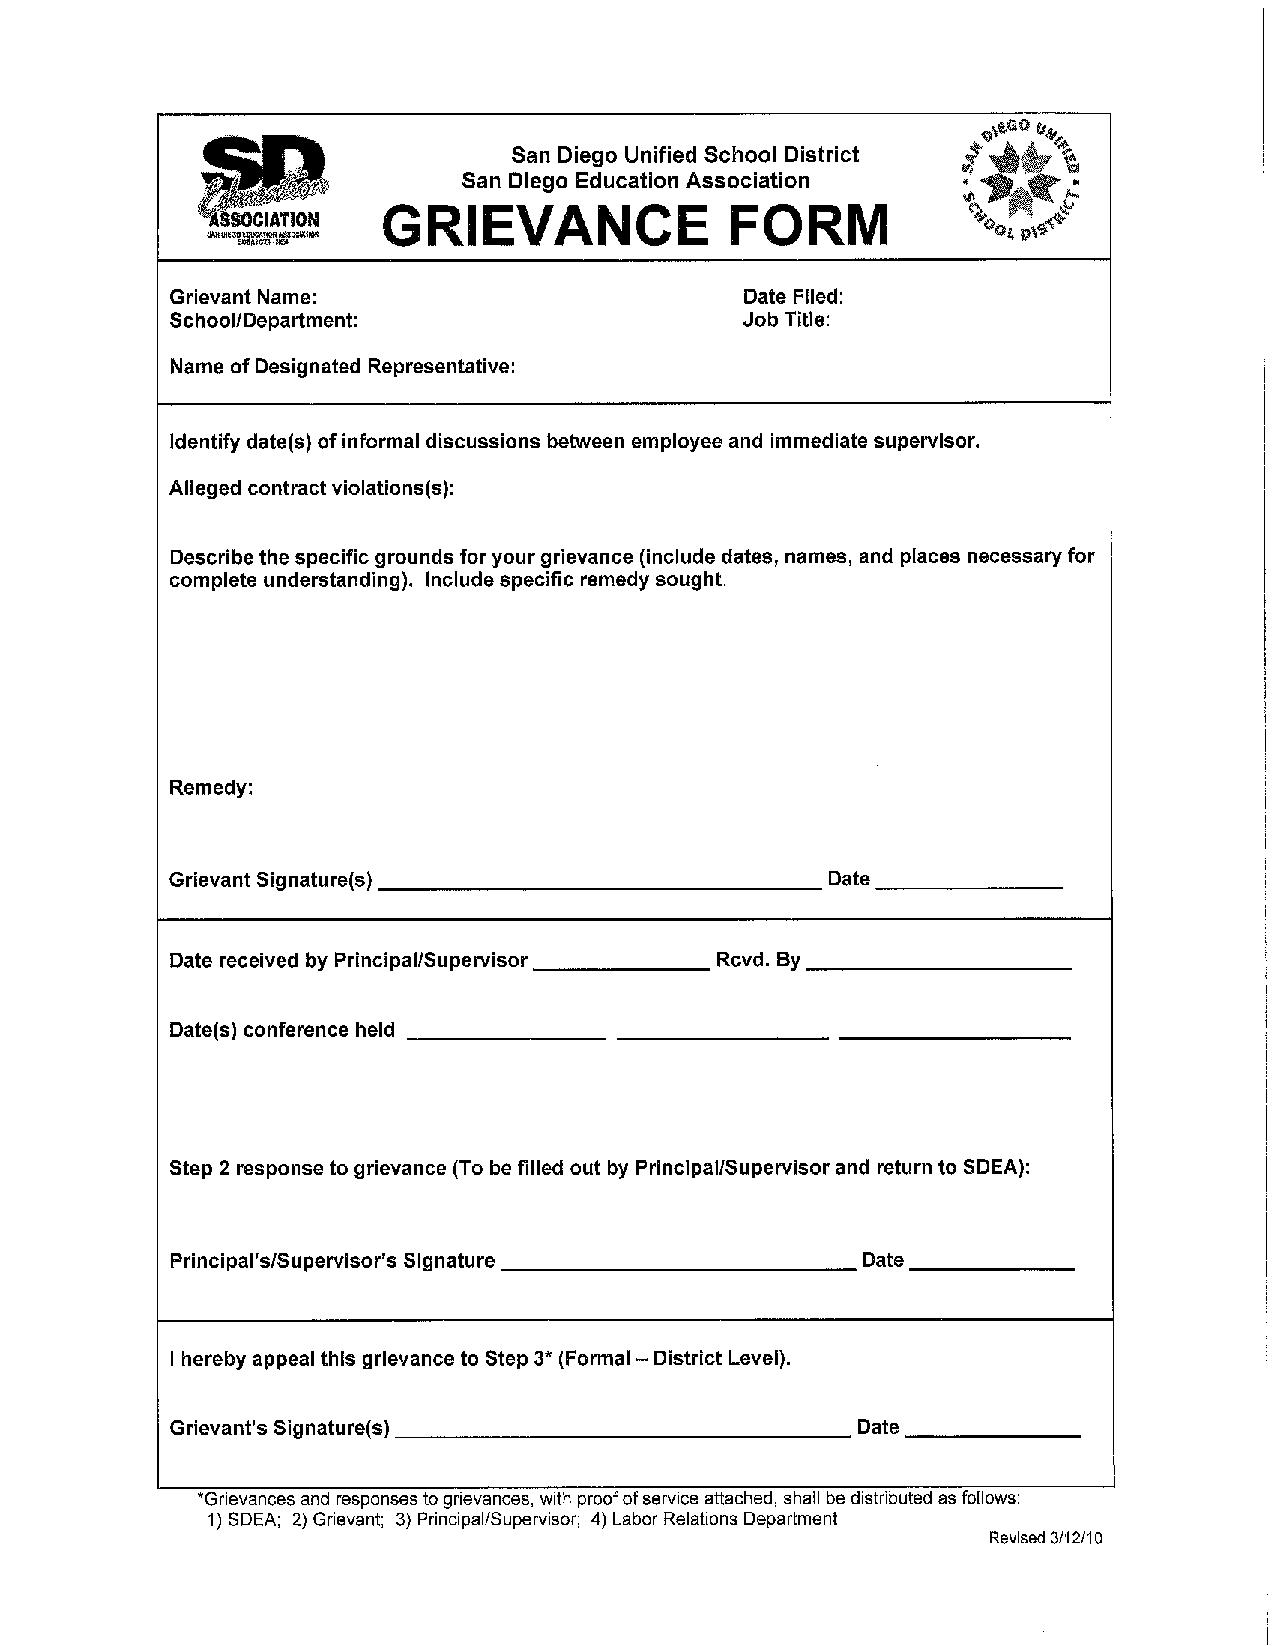 District Deeds Welcomes San Diego Unified Teachers – GRIEVANCE ...